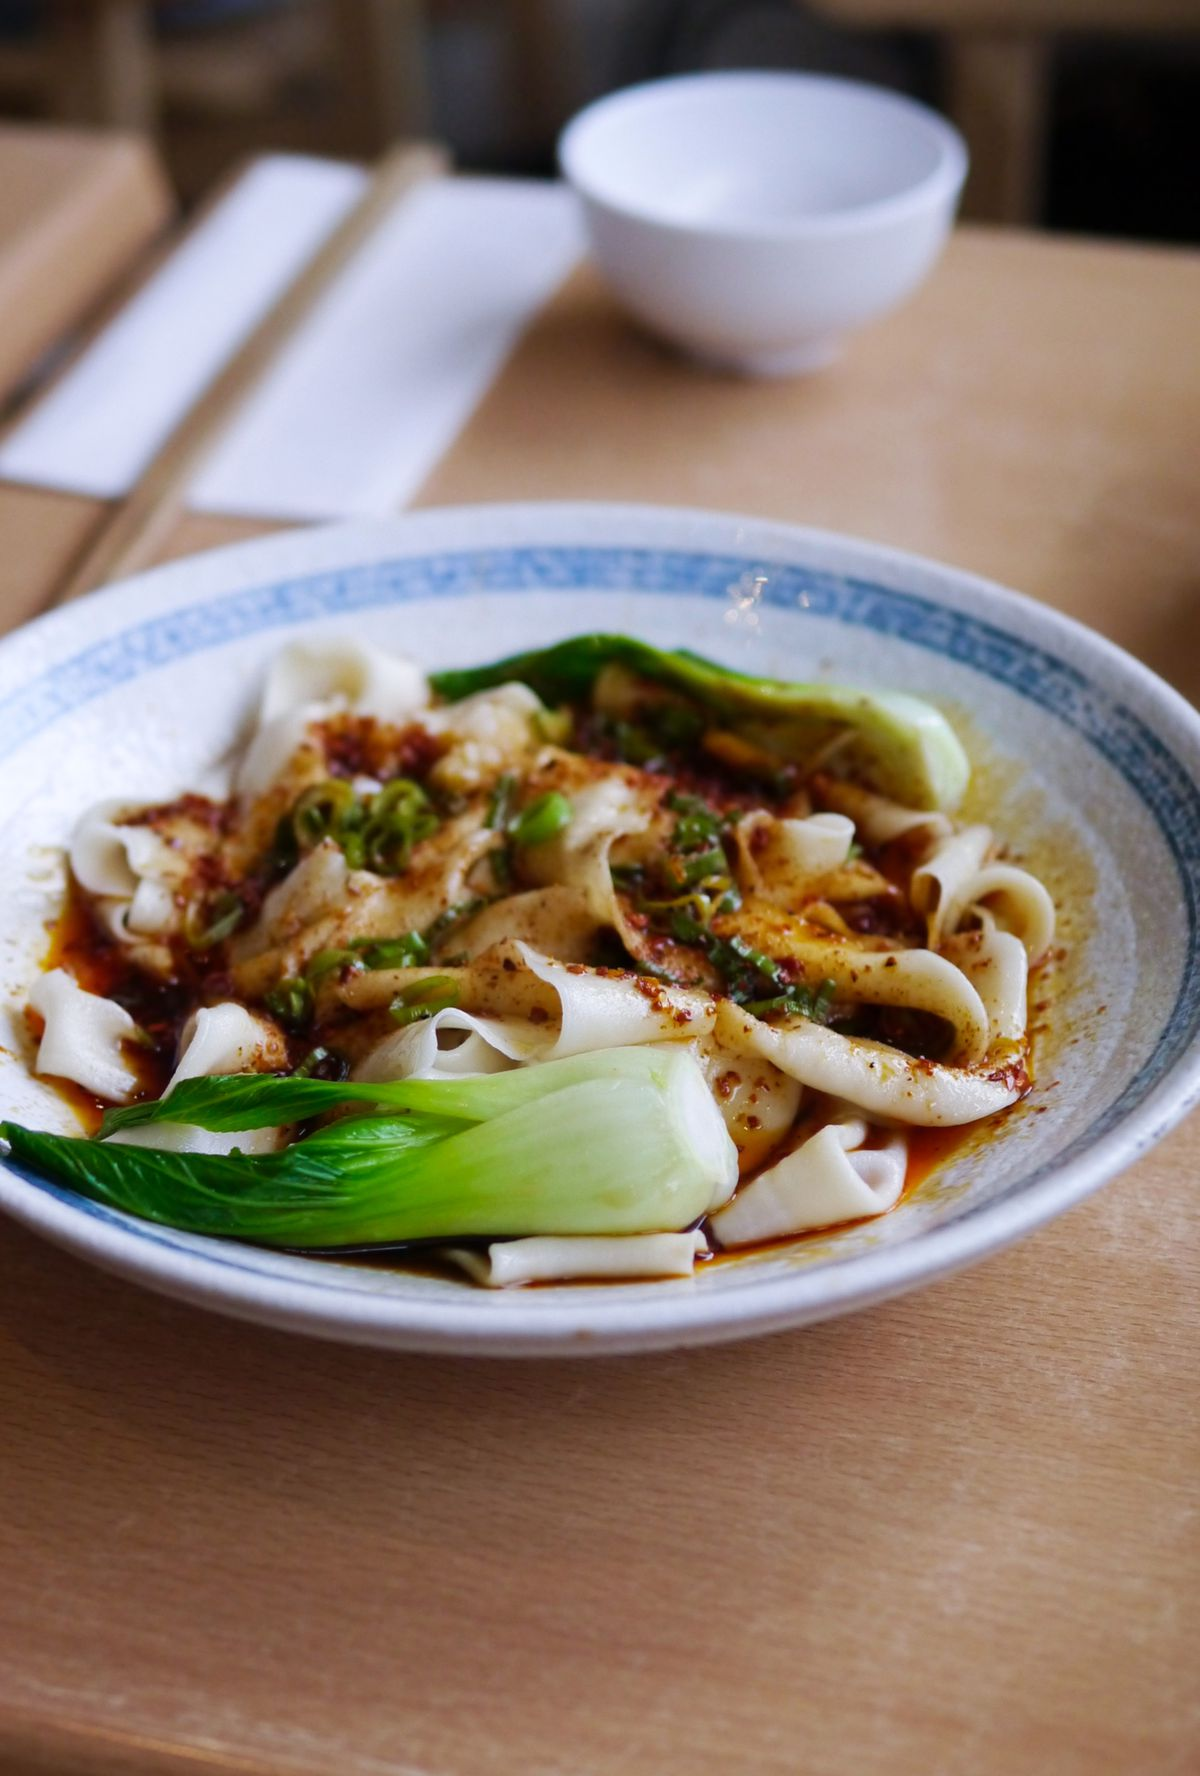 Biang biang noodles with greens and chilli oil at Xi'an Impression, a Xi'an Chinese restaurant in north London